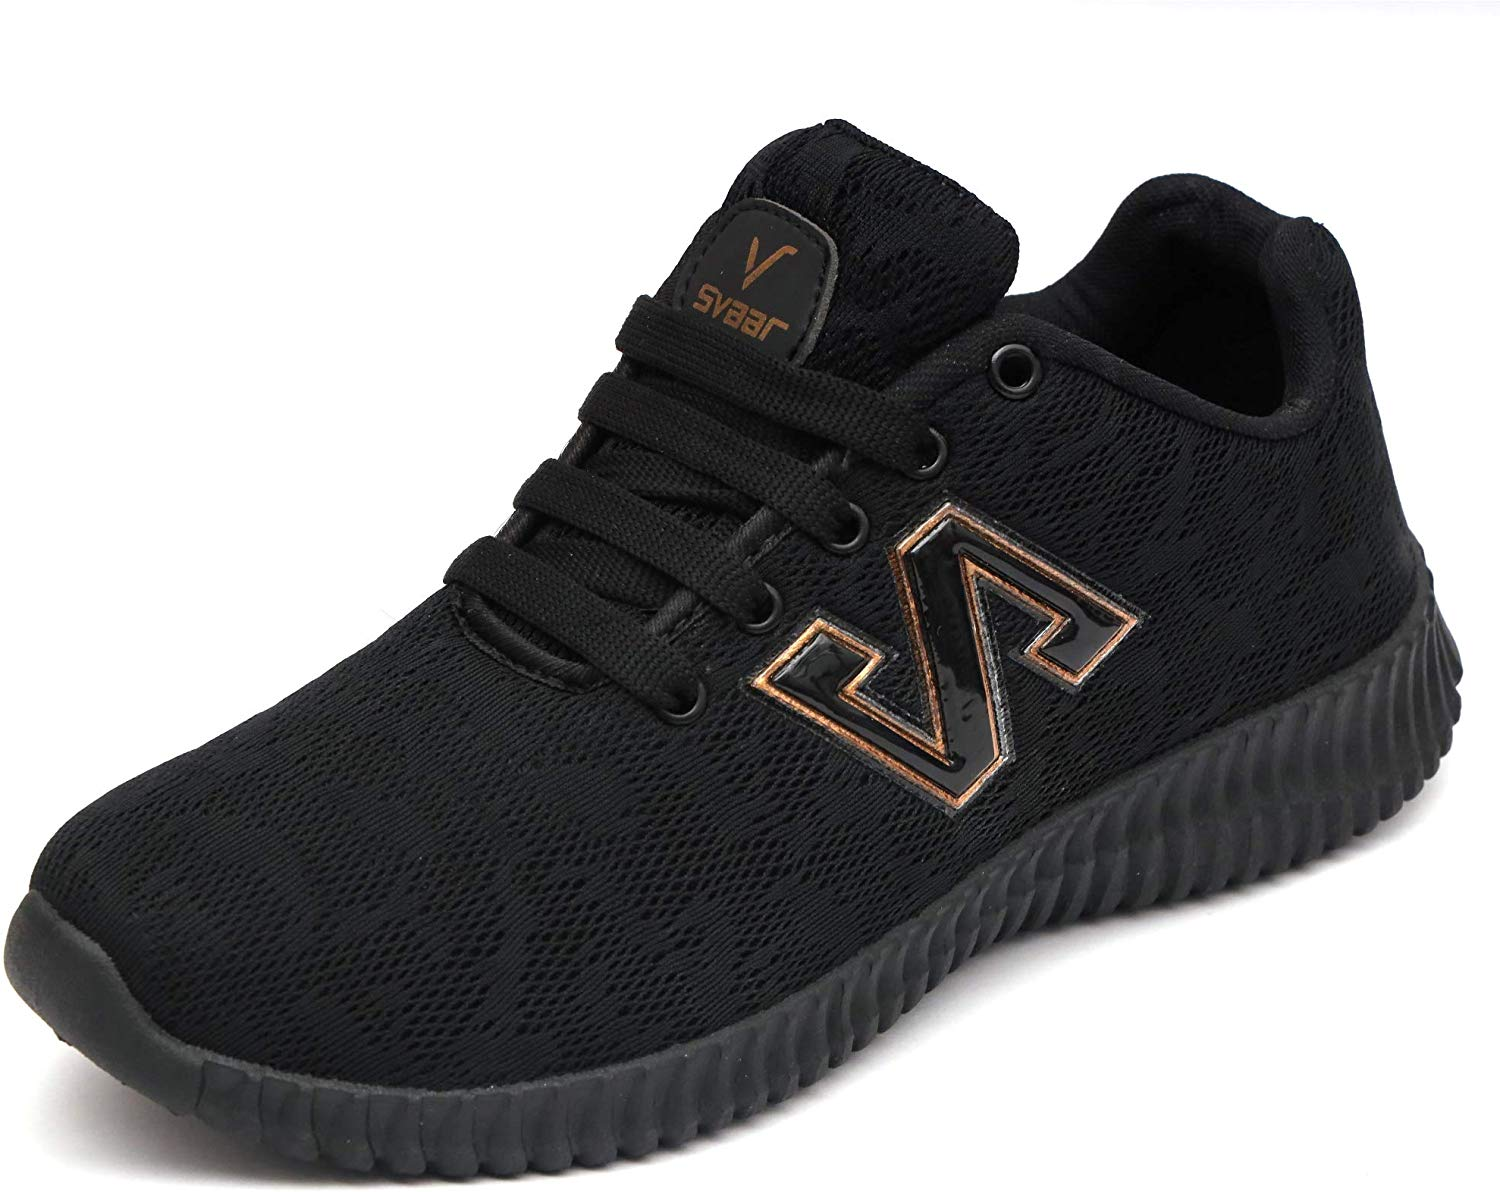 SVAAR Black Sports Shoes for FREE on 1st Amazon Fashion Purchase [Folllow Steps]